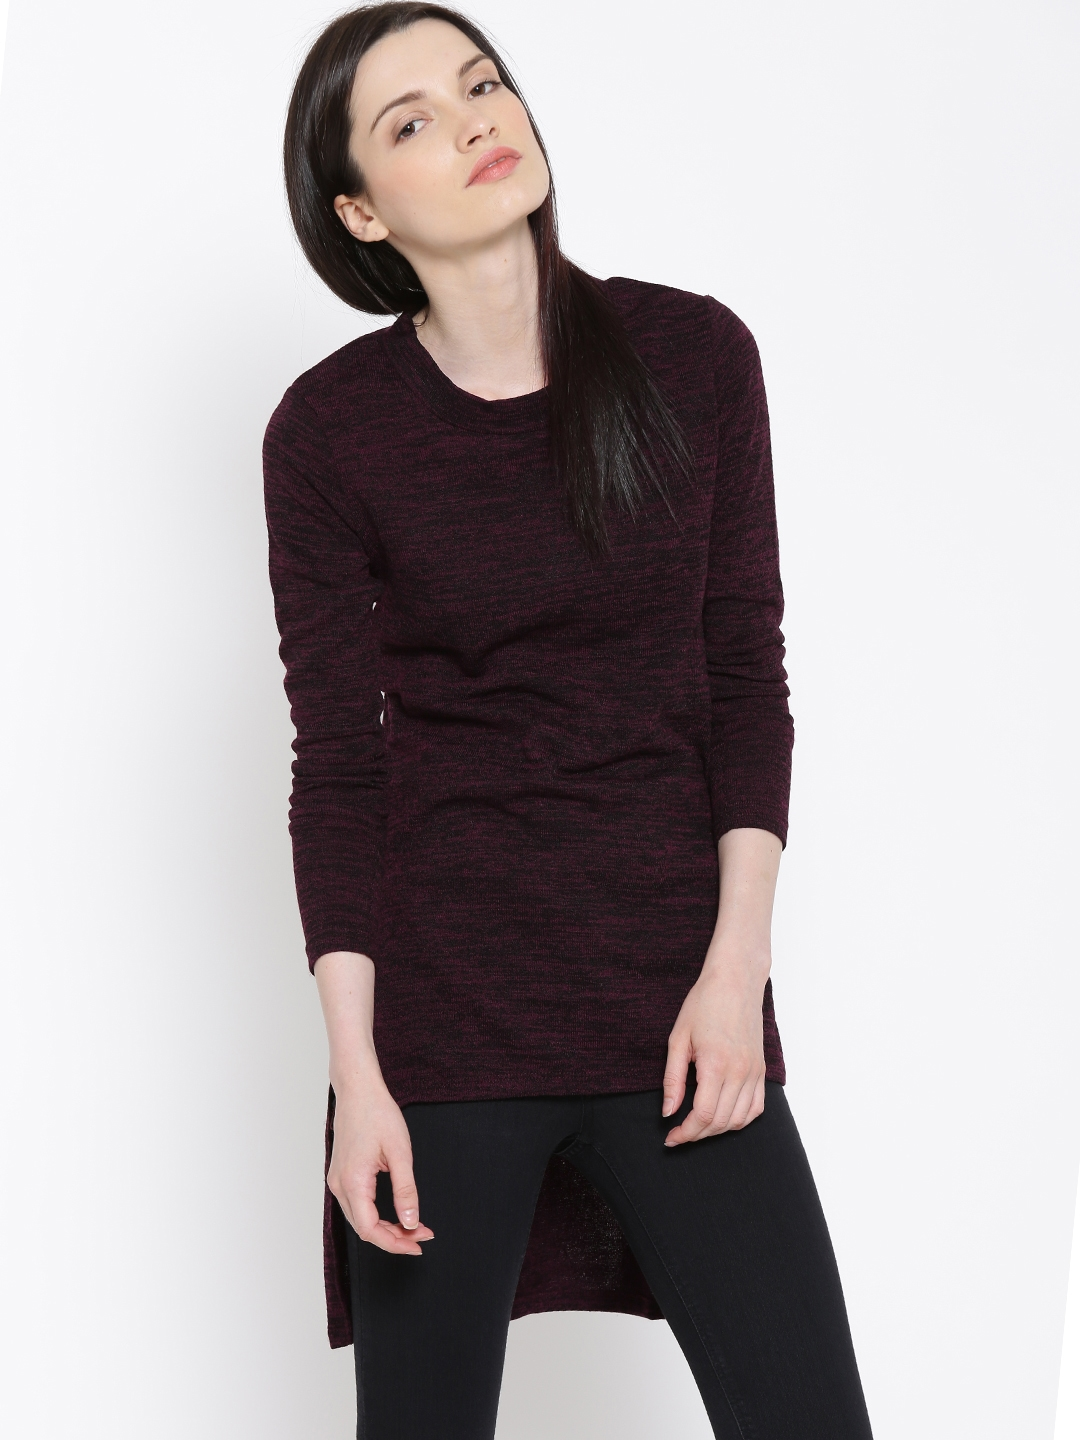 24ccb29fced Buy IZABEL LONDON By Pantaloons Burgundy High Low Sweater - Sweaters ...